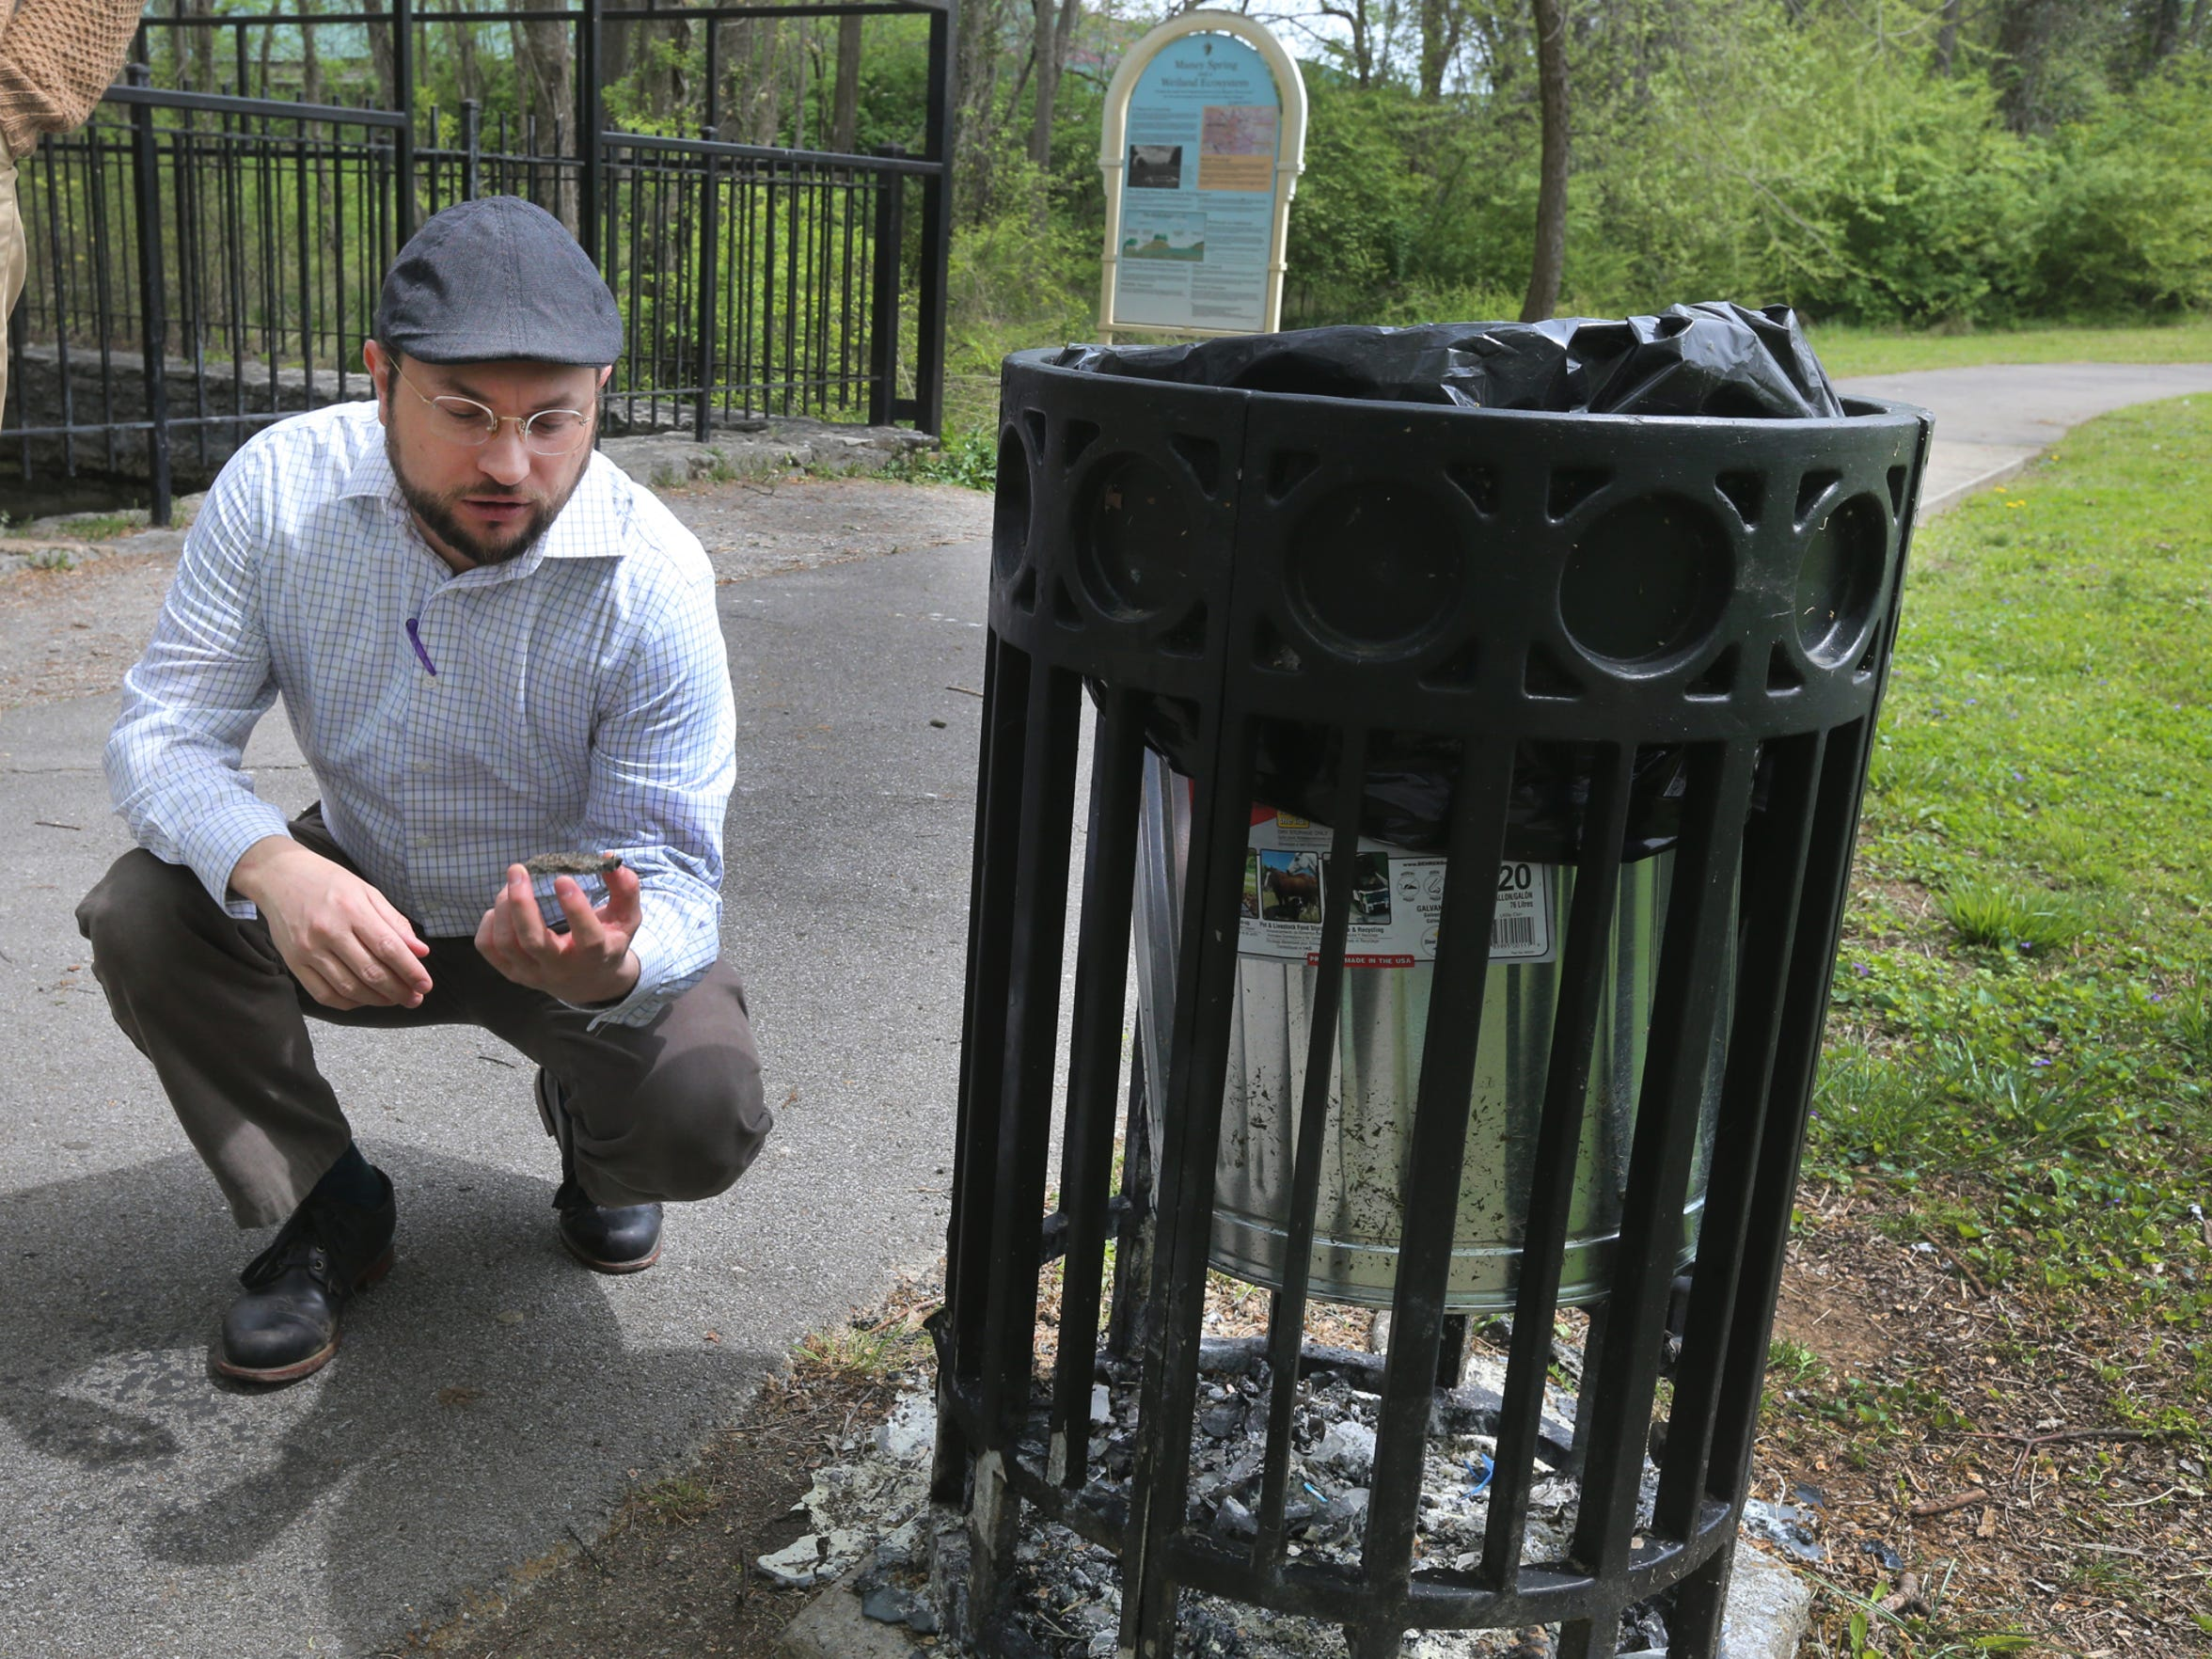 James Manning shows off a burned trash can that no longer has a cap at Oaklands Park during a walk around the area on Wednesday, April 13, 2016.